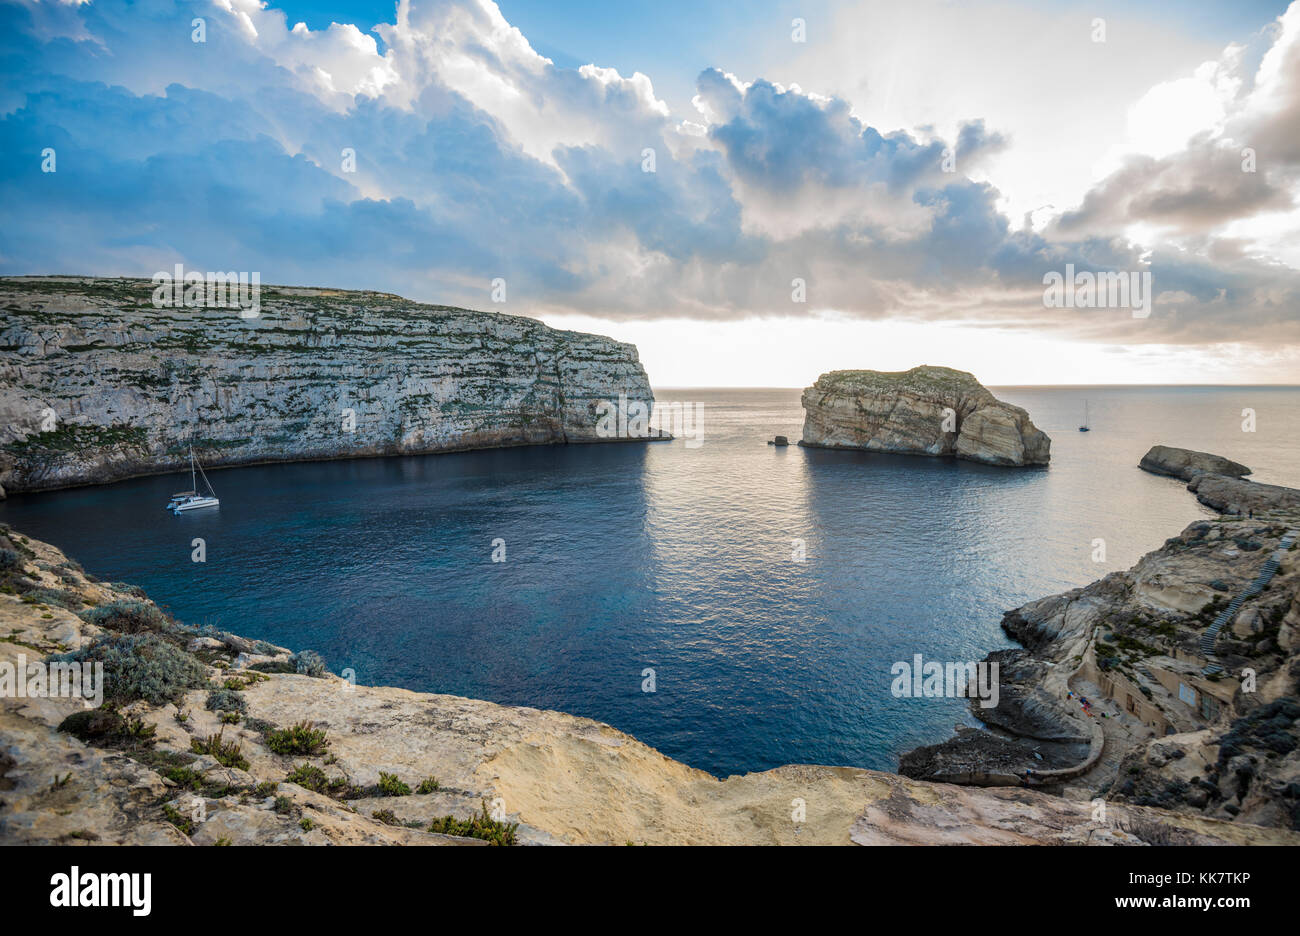 Panoramic view of Dwejra bay with Fungus Rock, Gozo, Malta - Stock Image